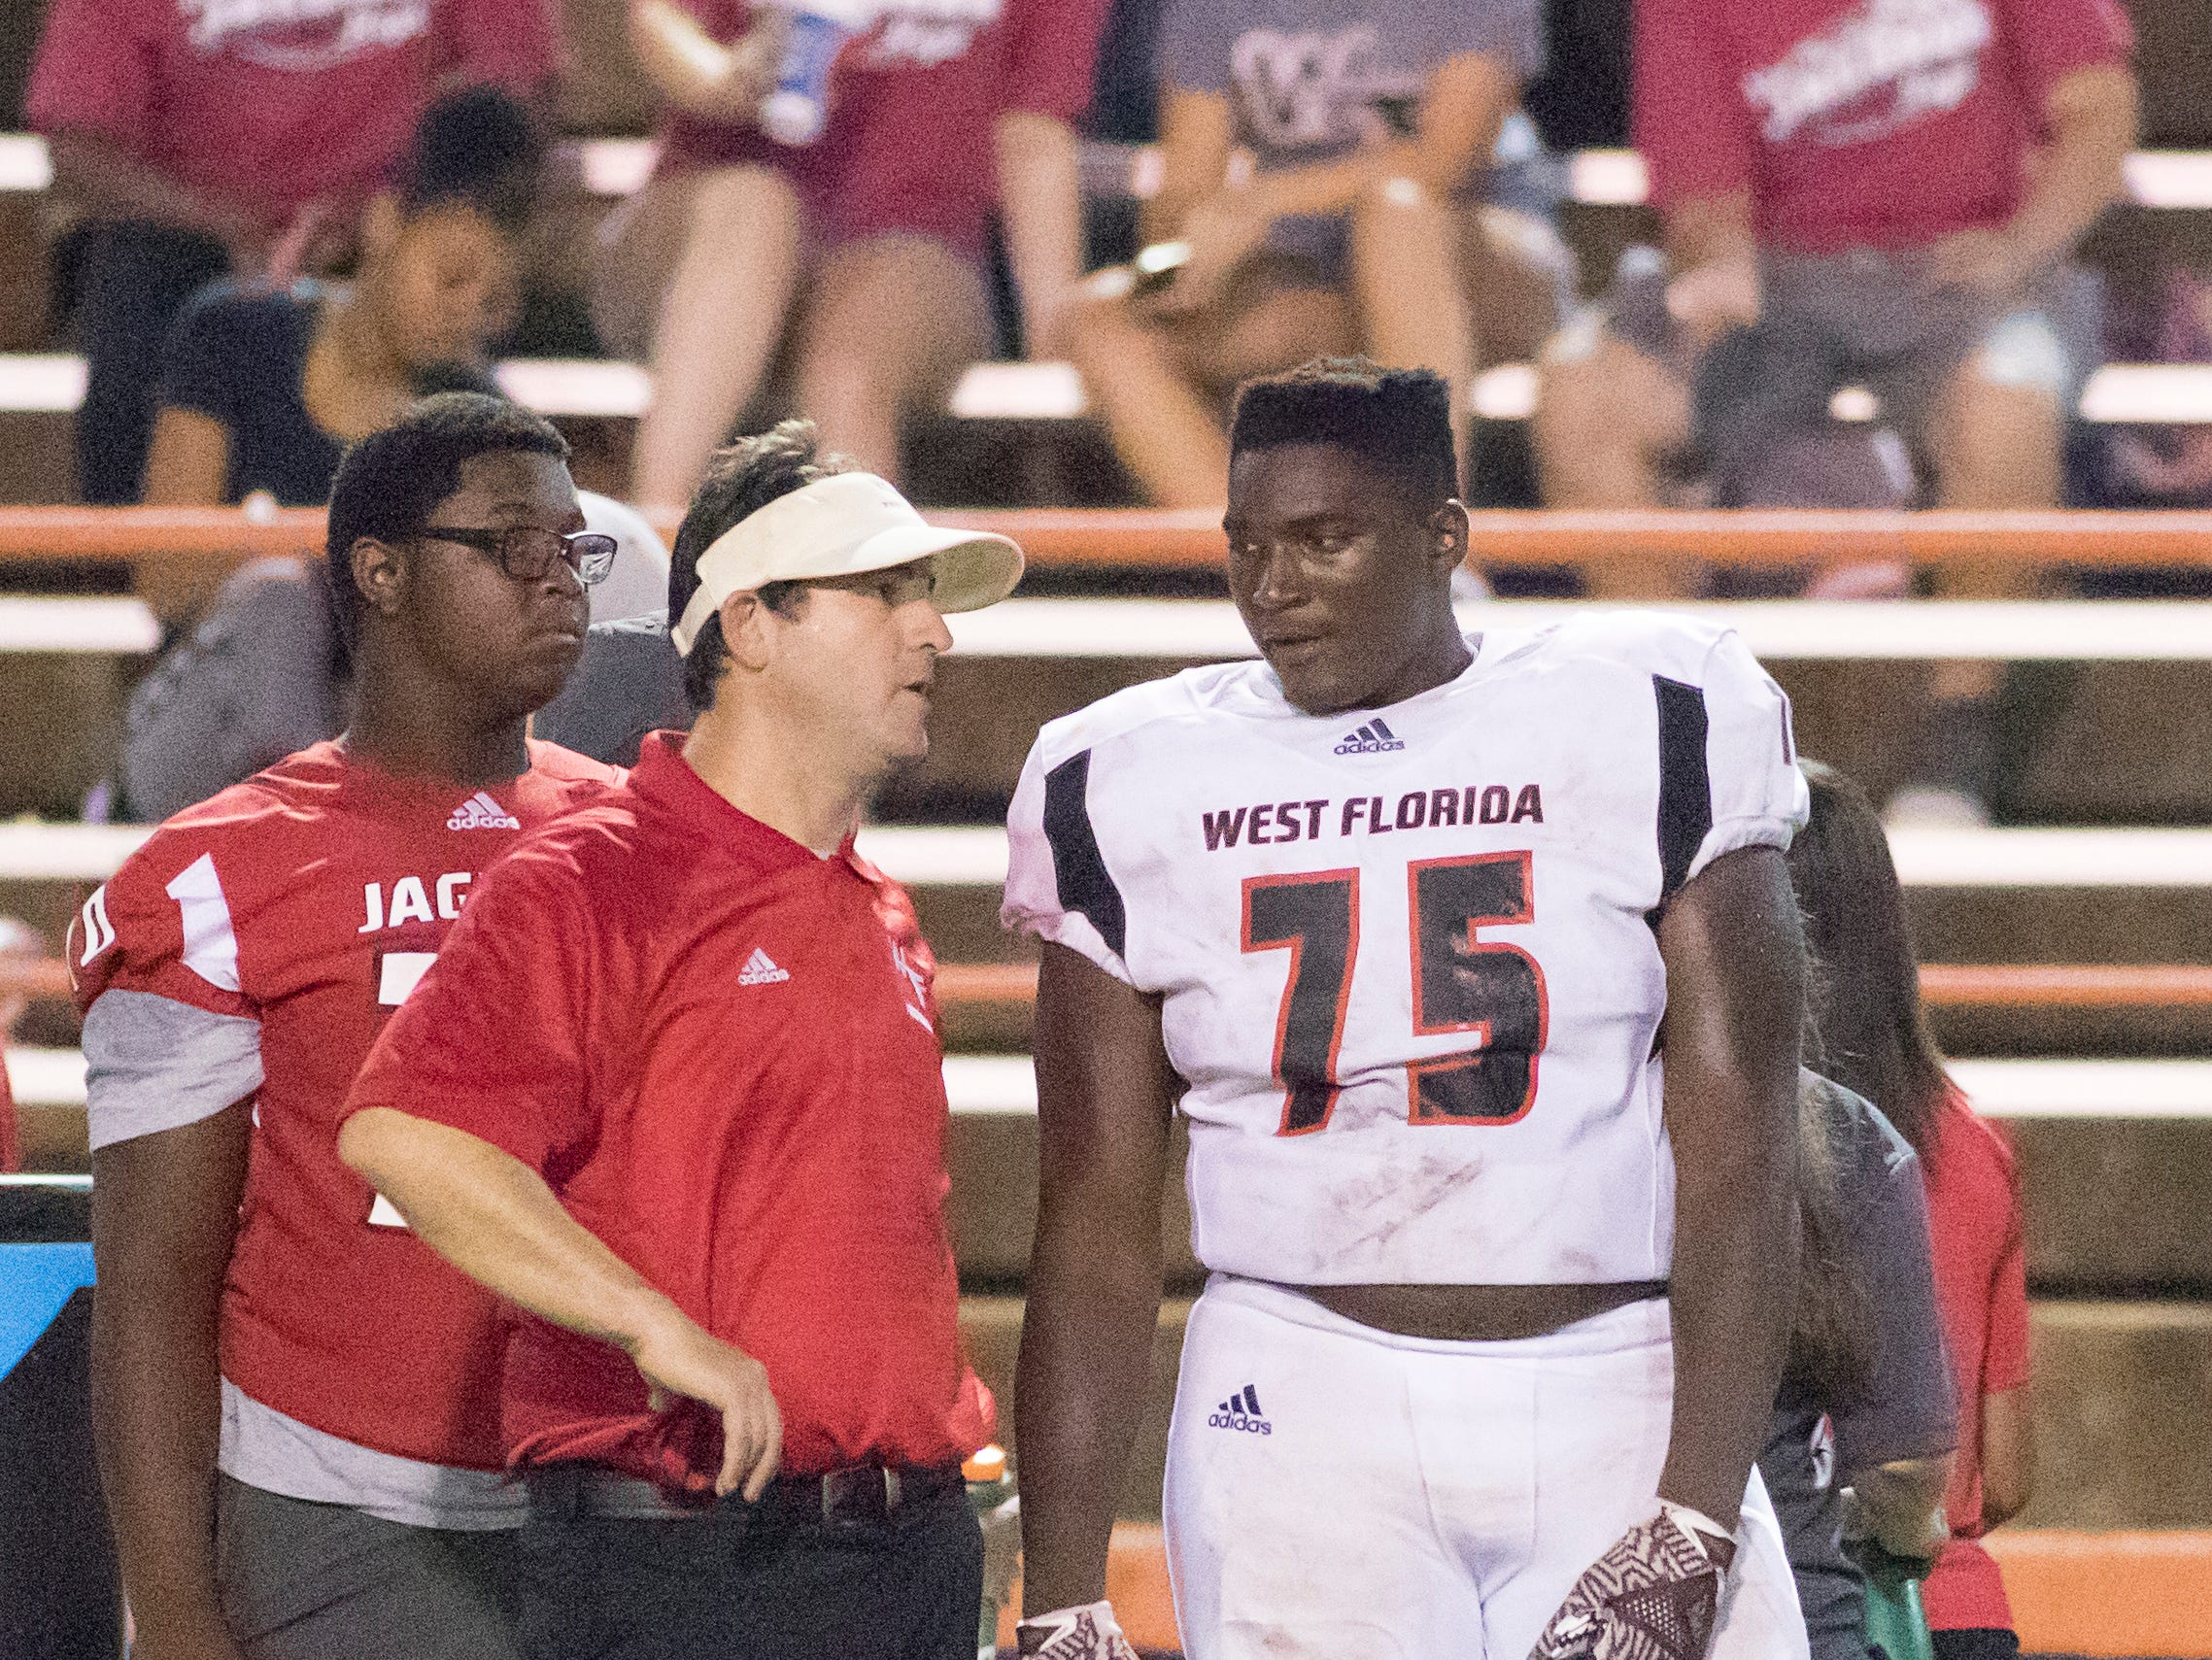 Jaguars head coach Rhett Summerford talks with Darius Washington (75) during the West Florida vs Escambia football game at Escambia High School in Pensacola on Thursday, August 23, 2018.